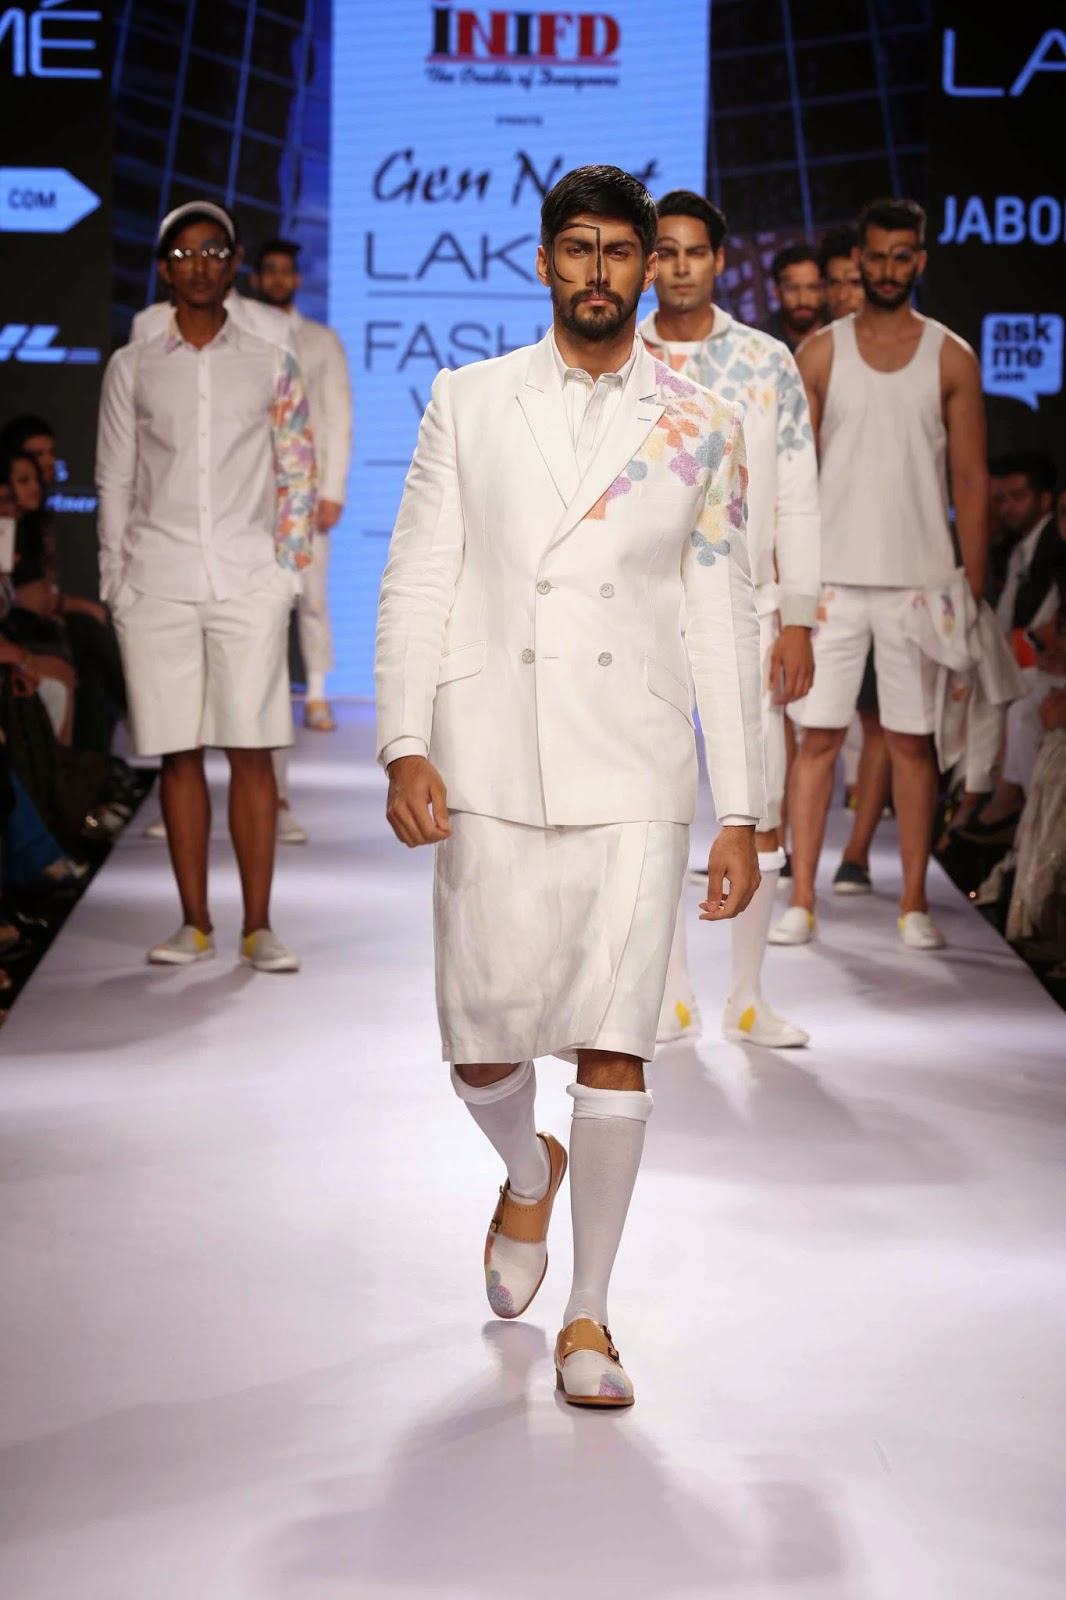 http://aquaintperspective.blogspot.in/, LIFW day 1, Manish Bansal